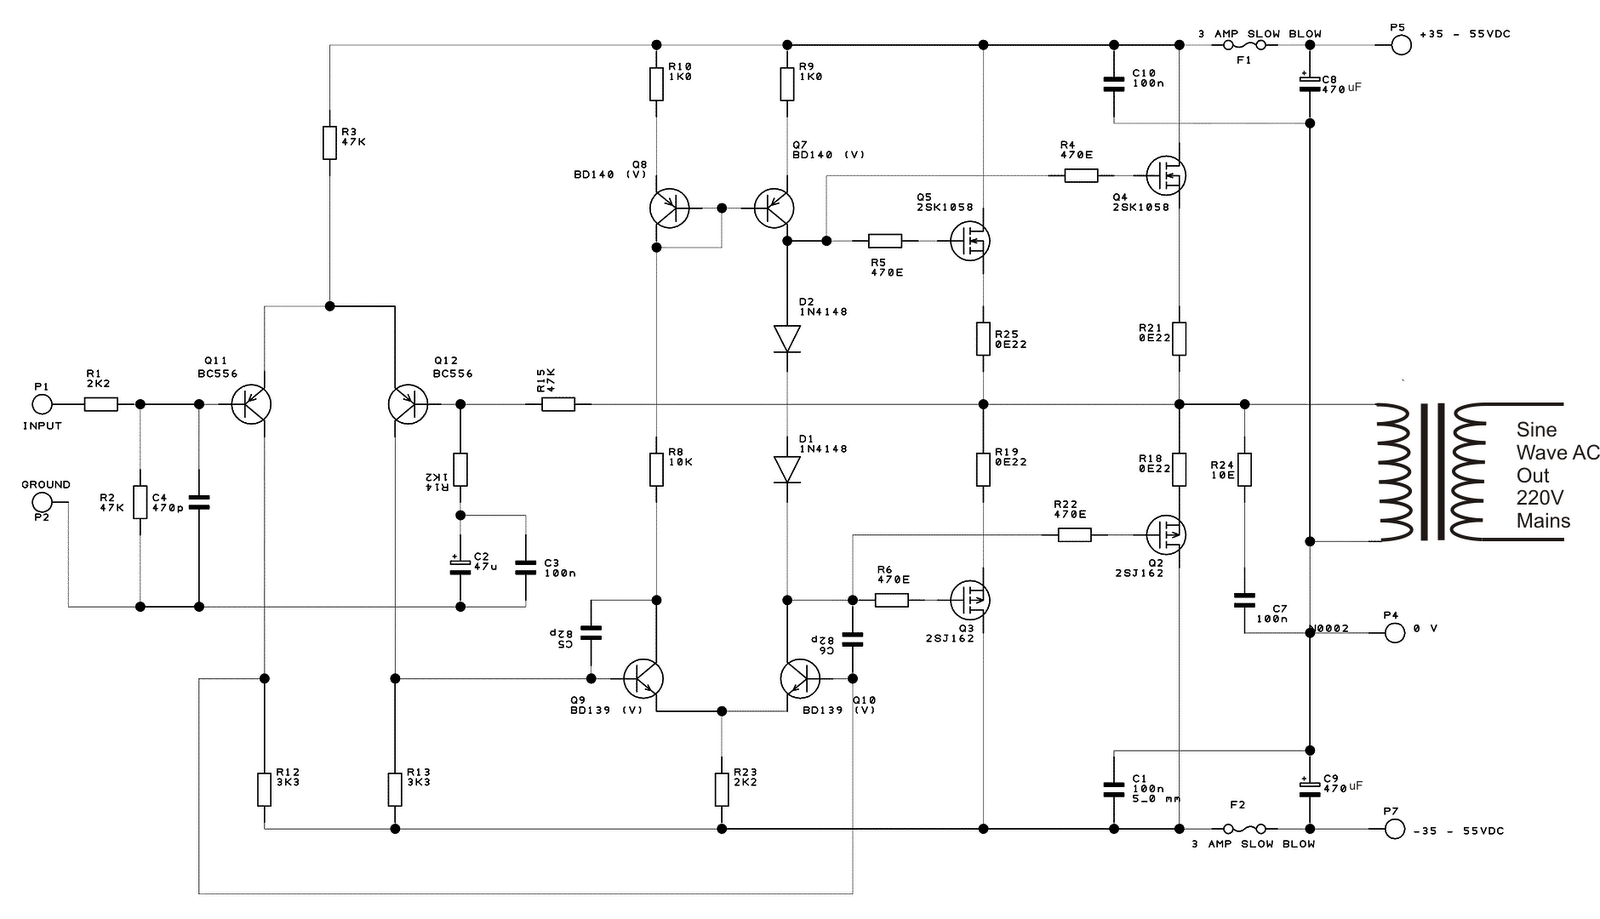 dc to ac inverter schematic diagram african elephant food chain h bridge free engine image